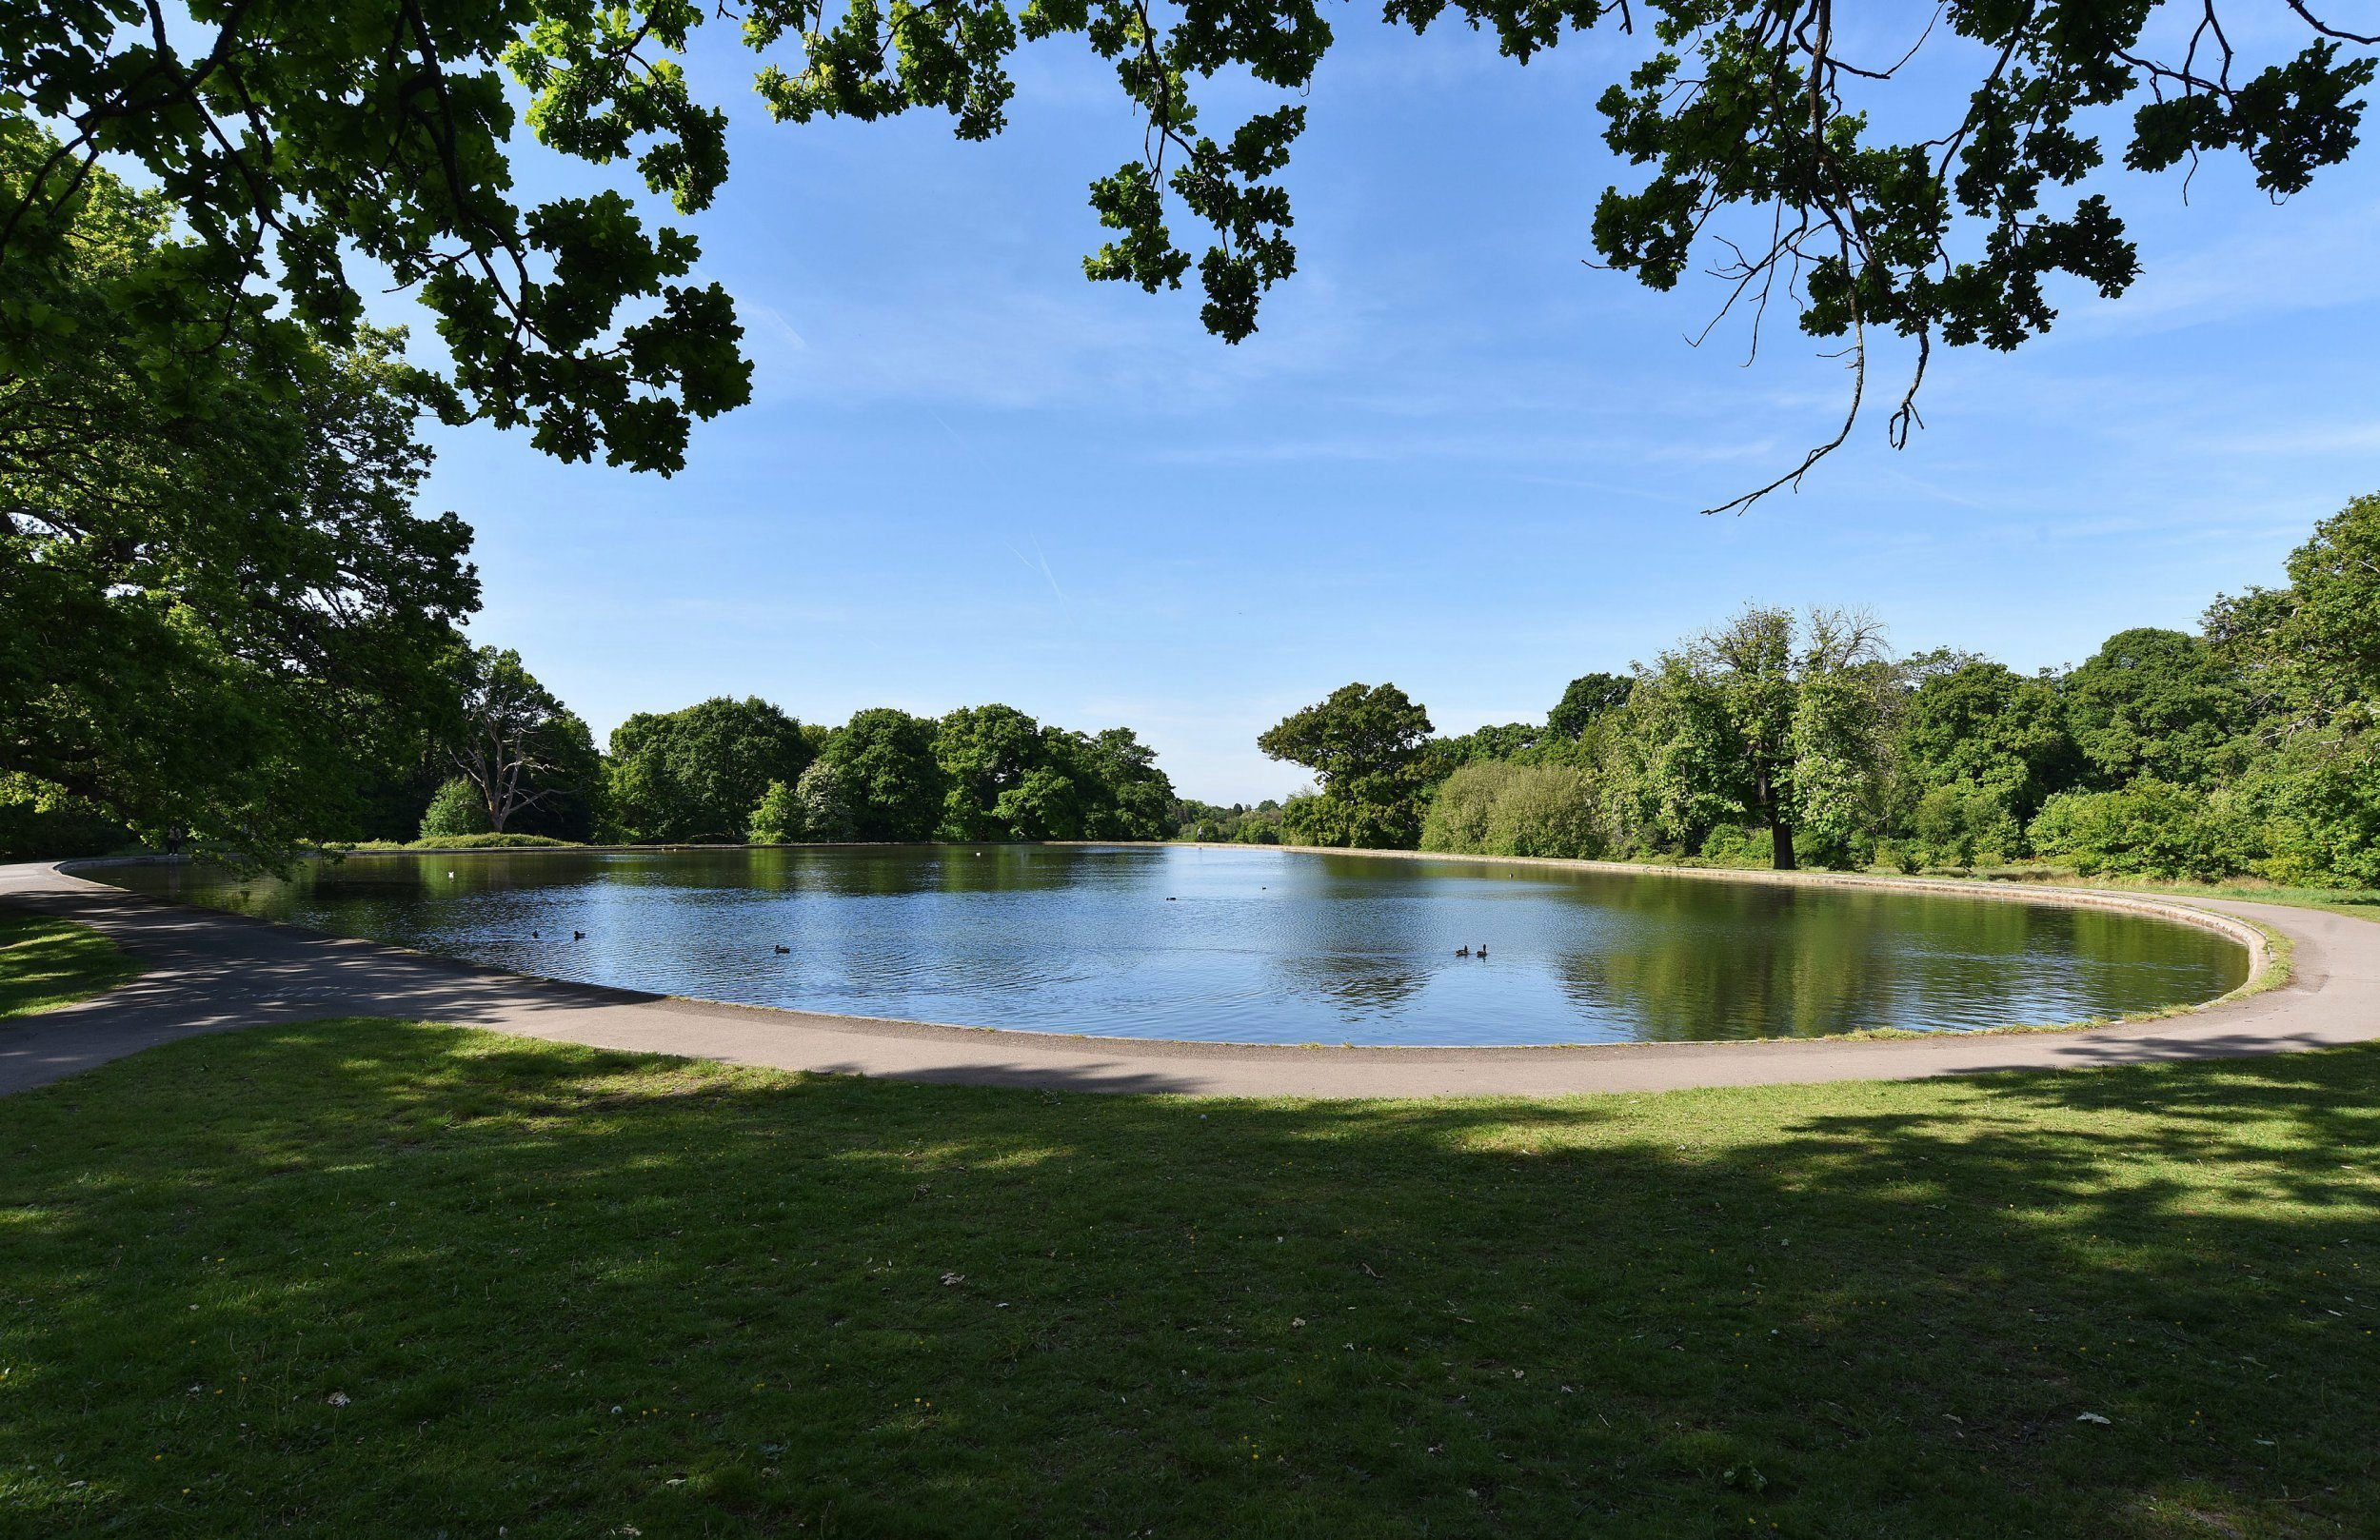 Amandeep Singh Sansoa's body was found in the then-drained yachting pond in Southampton Common